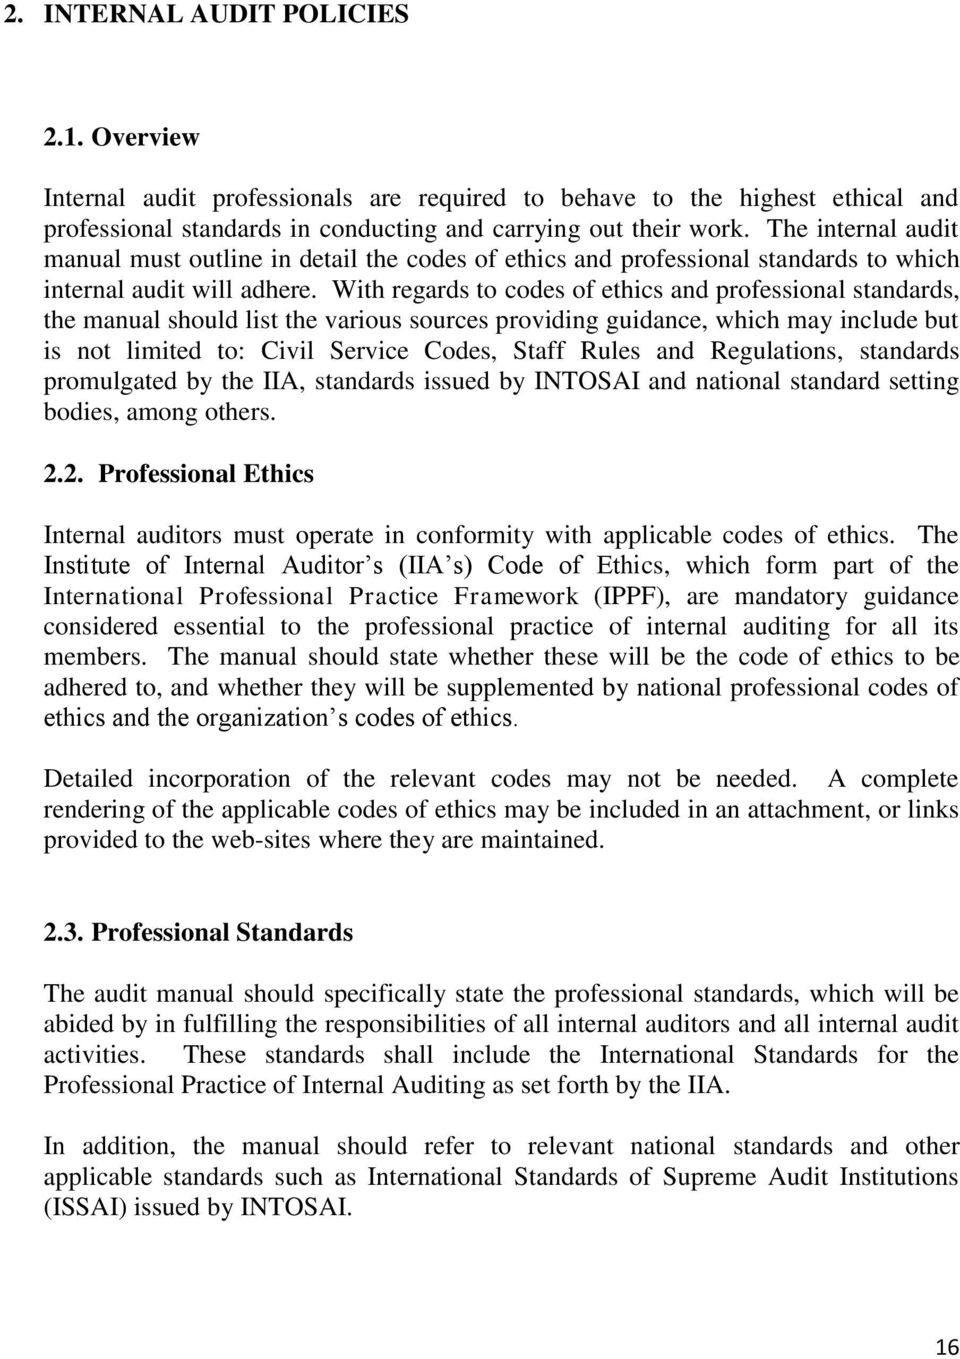 With regards to codes of ethics and professional standards, the manual  should list the various